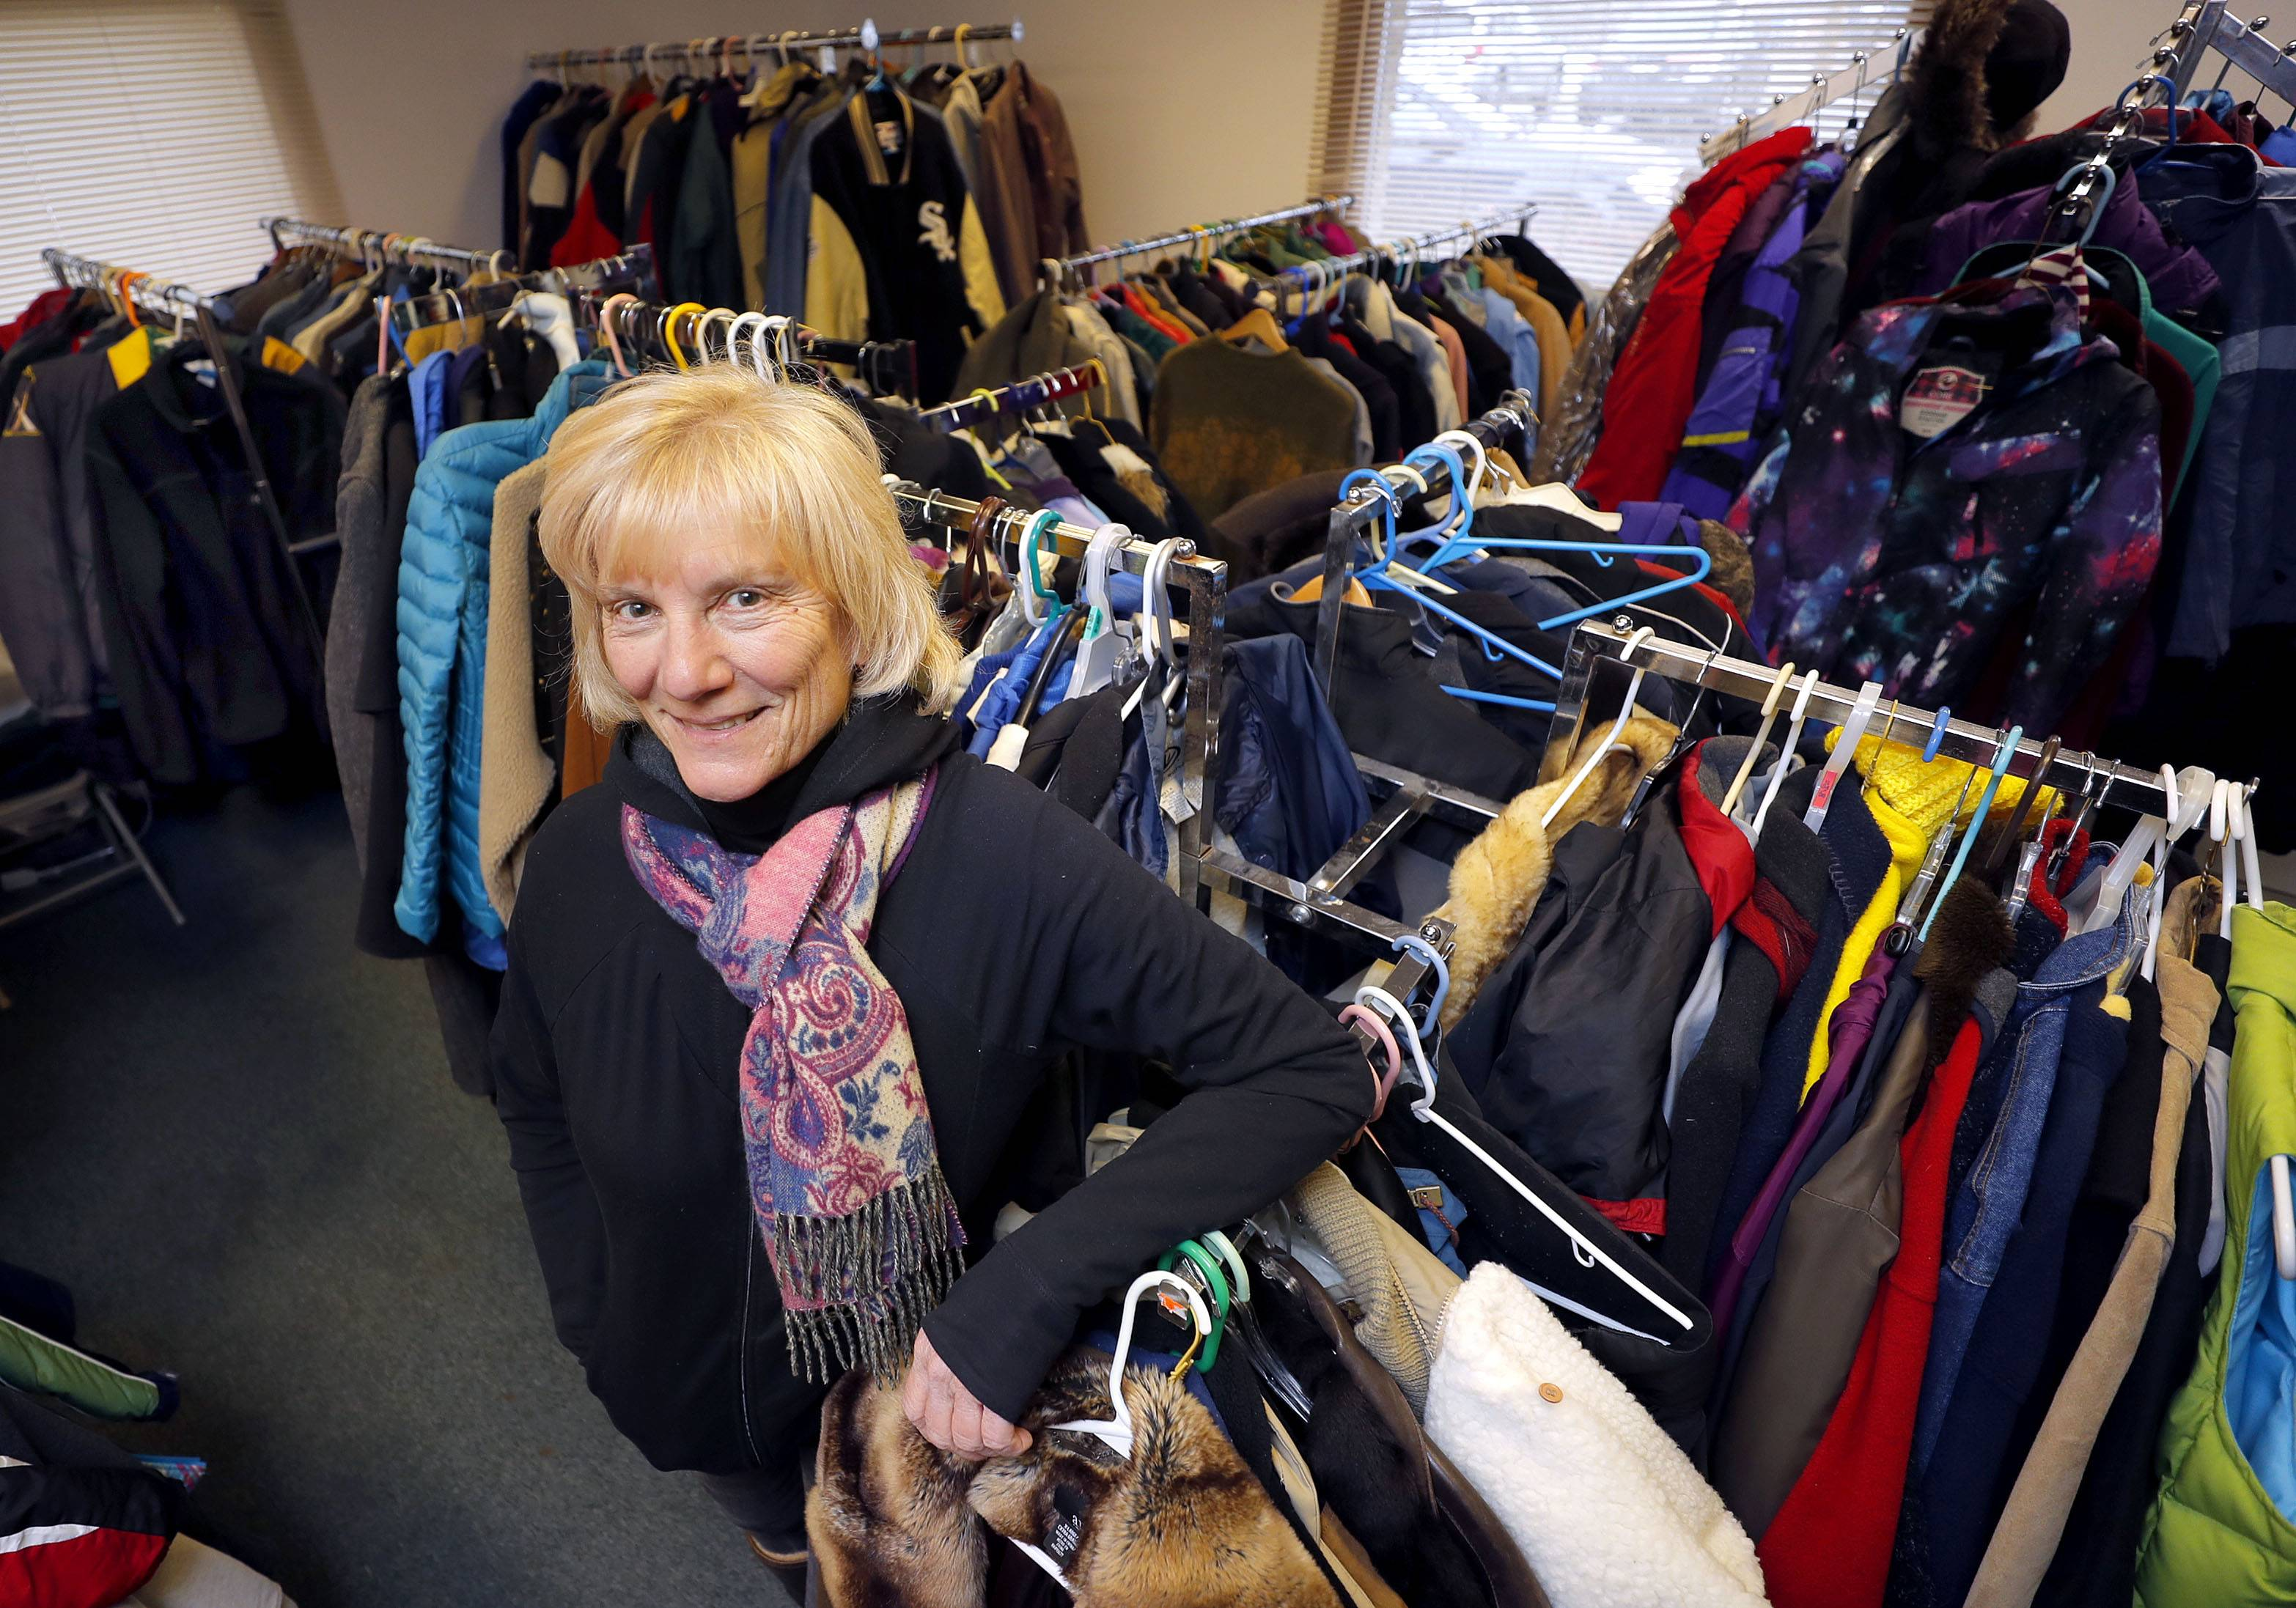 Mary Carmody is executive director of the Midwest Veterans Closet in North Chicago, which helps more than 500 veterans a month by providing free essential items such as coats, clothing, and food.